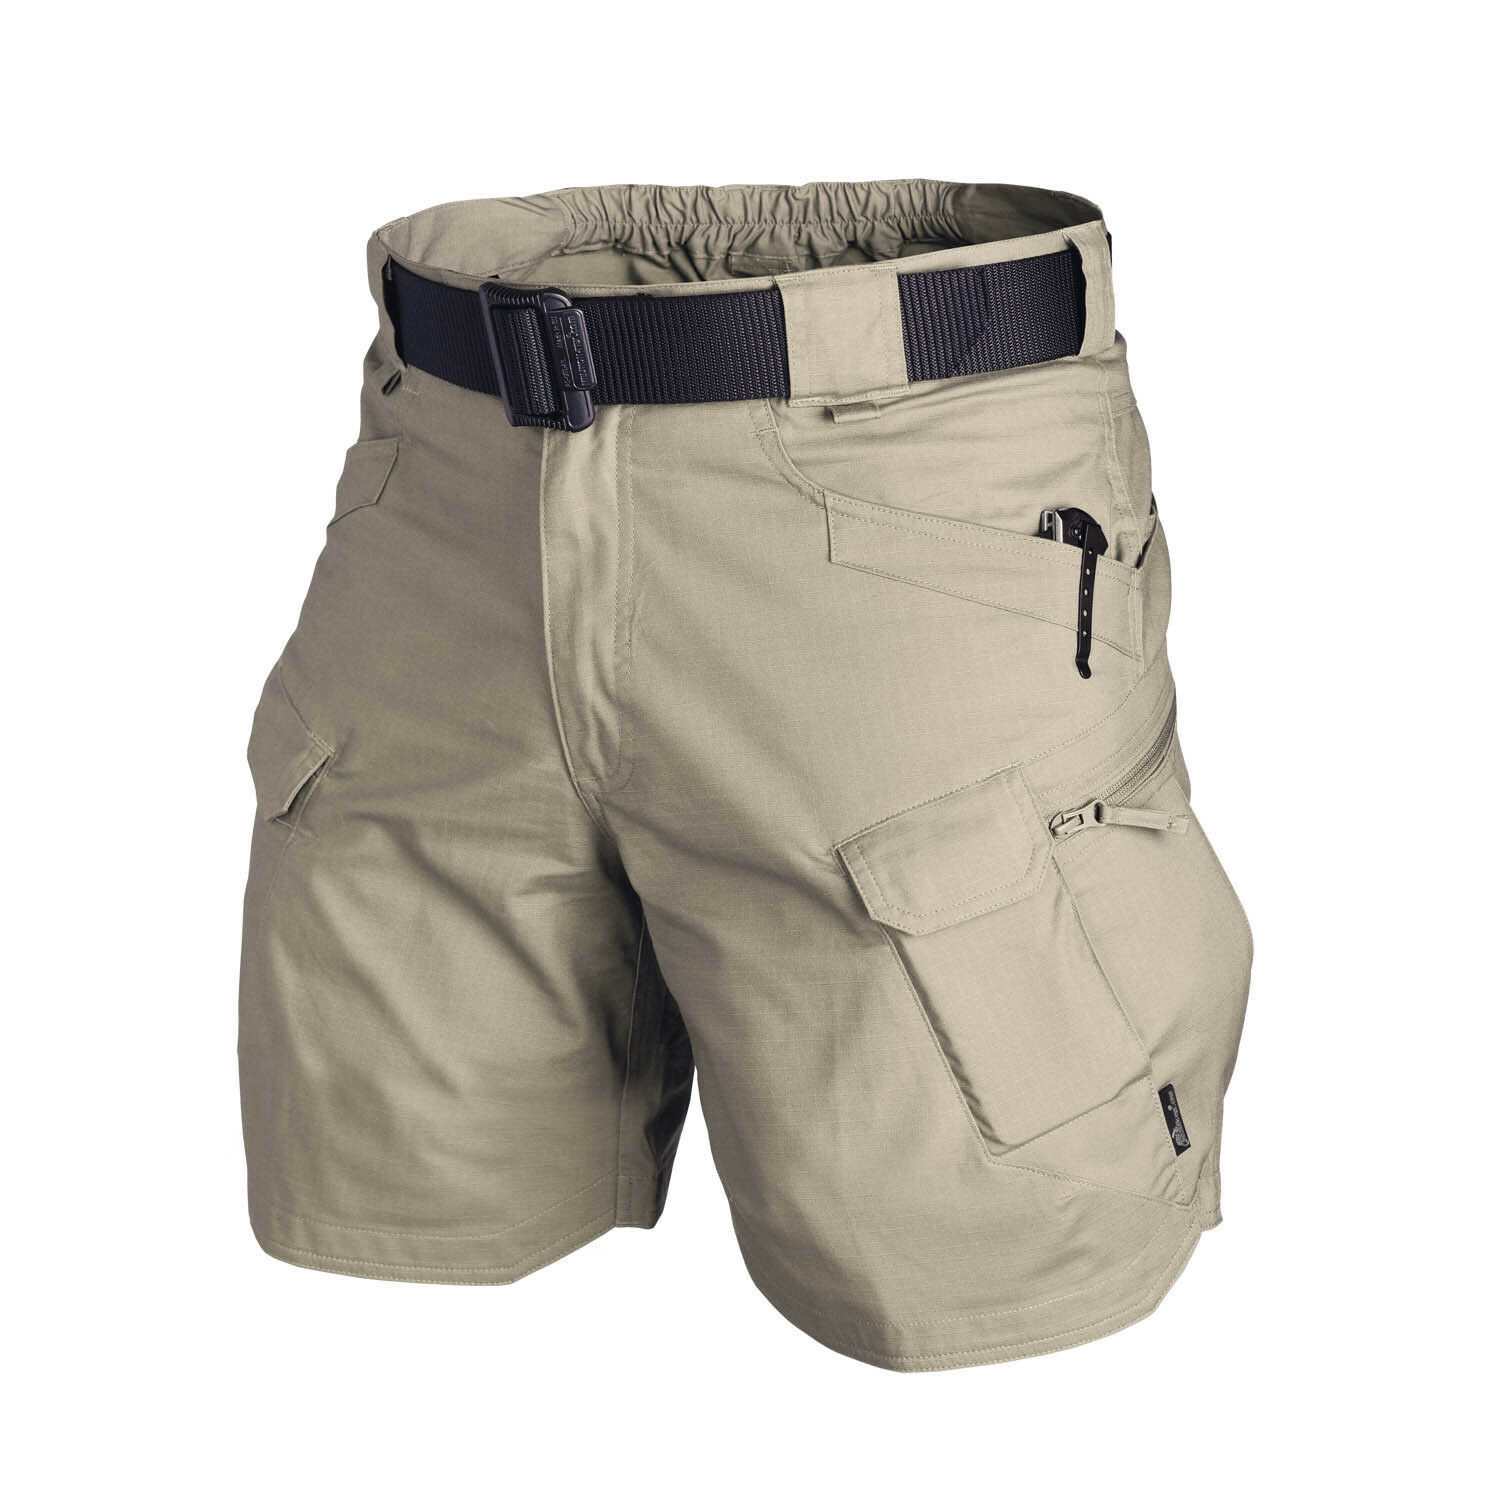 Helikon Tex Outdoor UTS URBAN TACTICAL Outdoor Tex Freizeit SHORTS 8.5 Hose kurz Khaki Gr S bb5bba